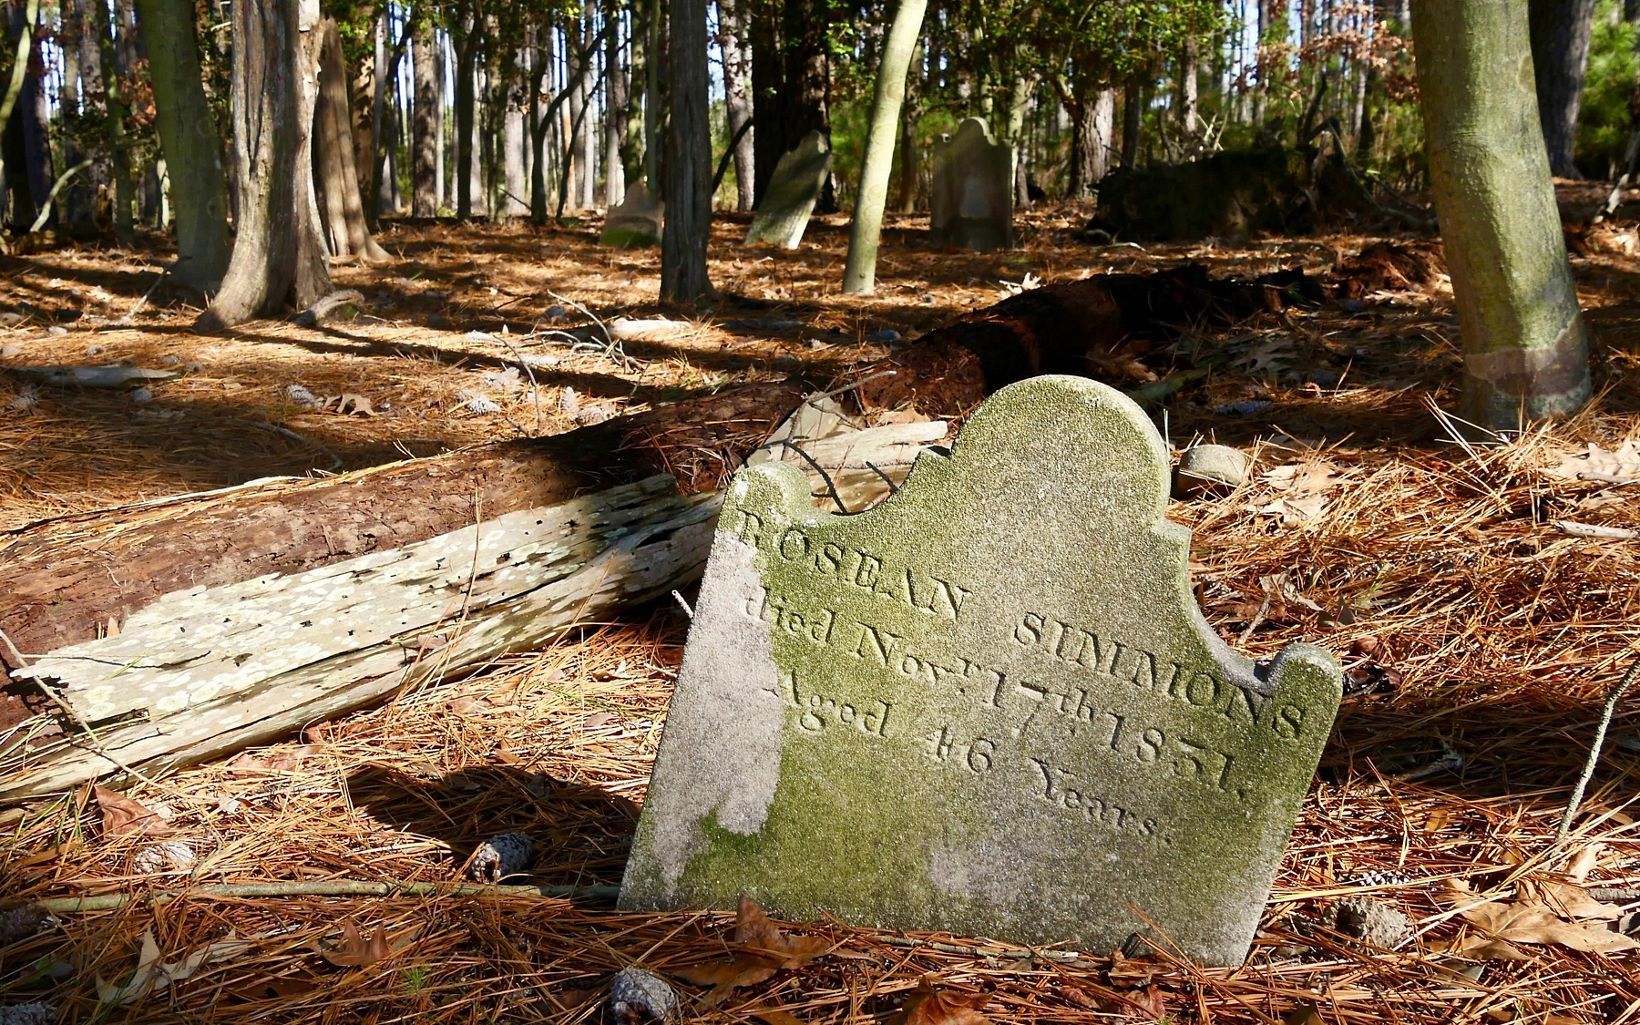 A long forgotten cemetery plot belonging to the Robson family was discovered on the Robinson Neck Preserve a number of years ago.